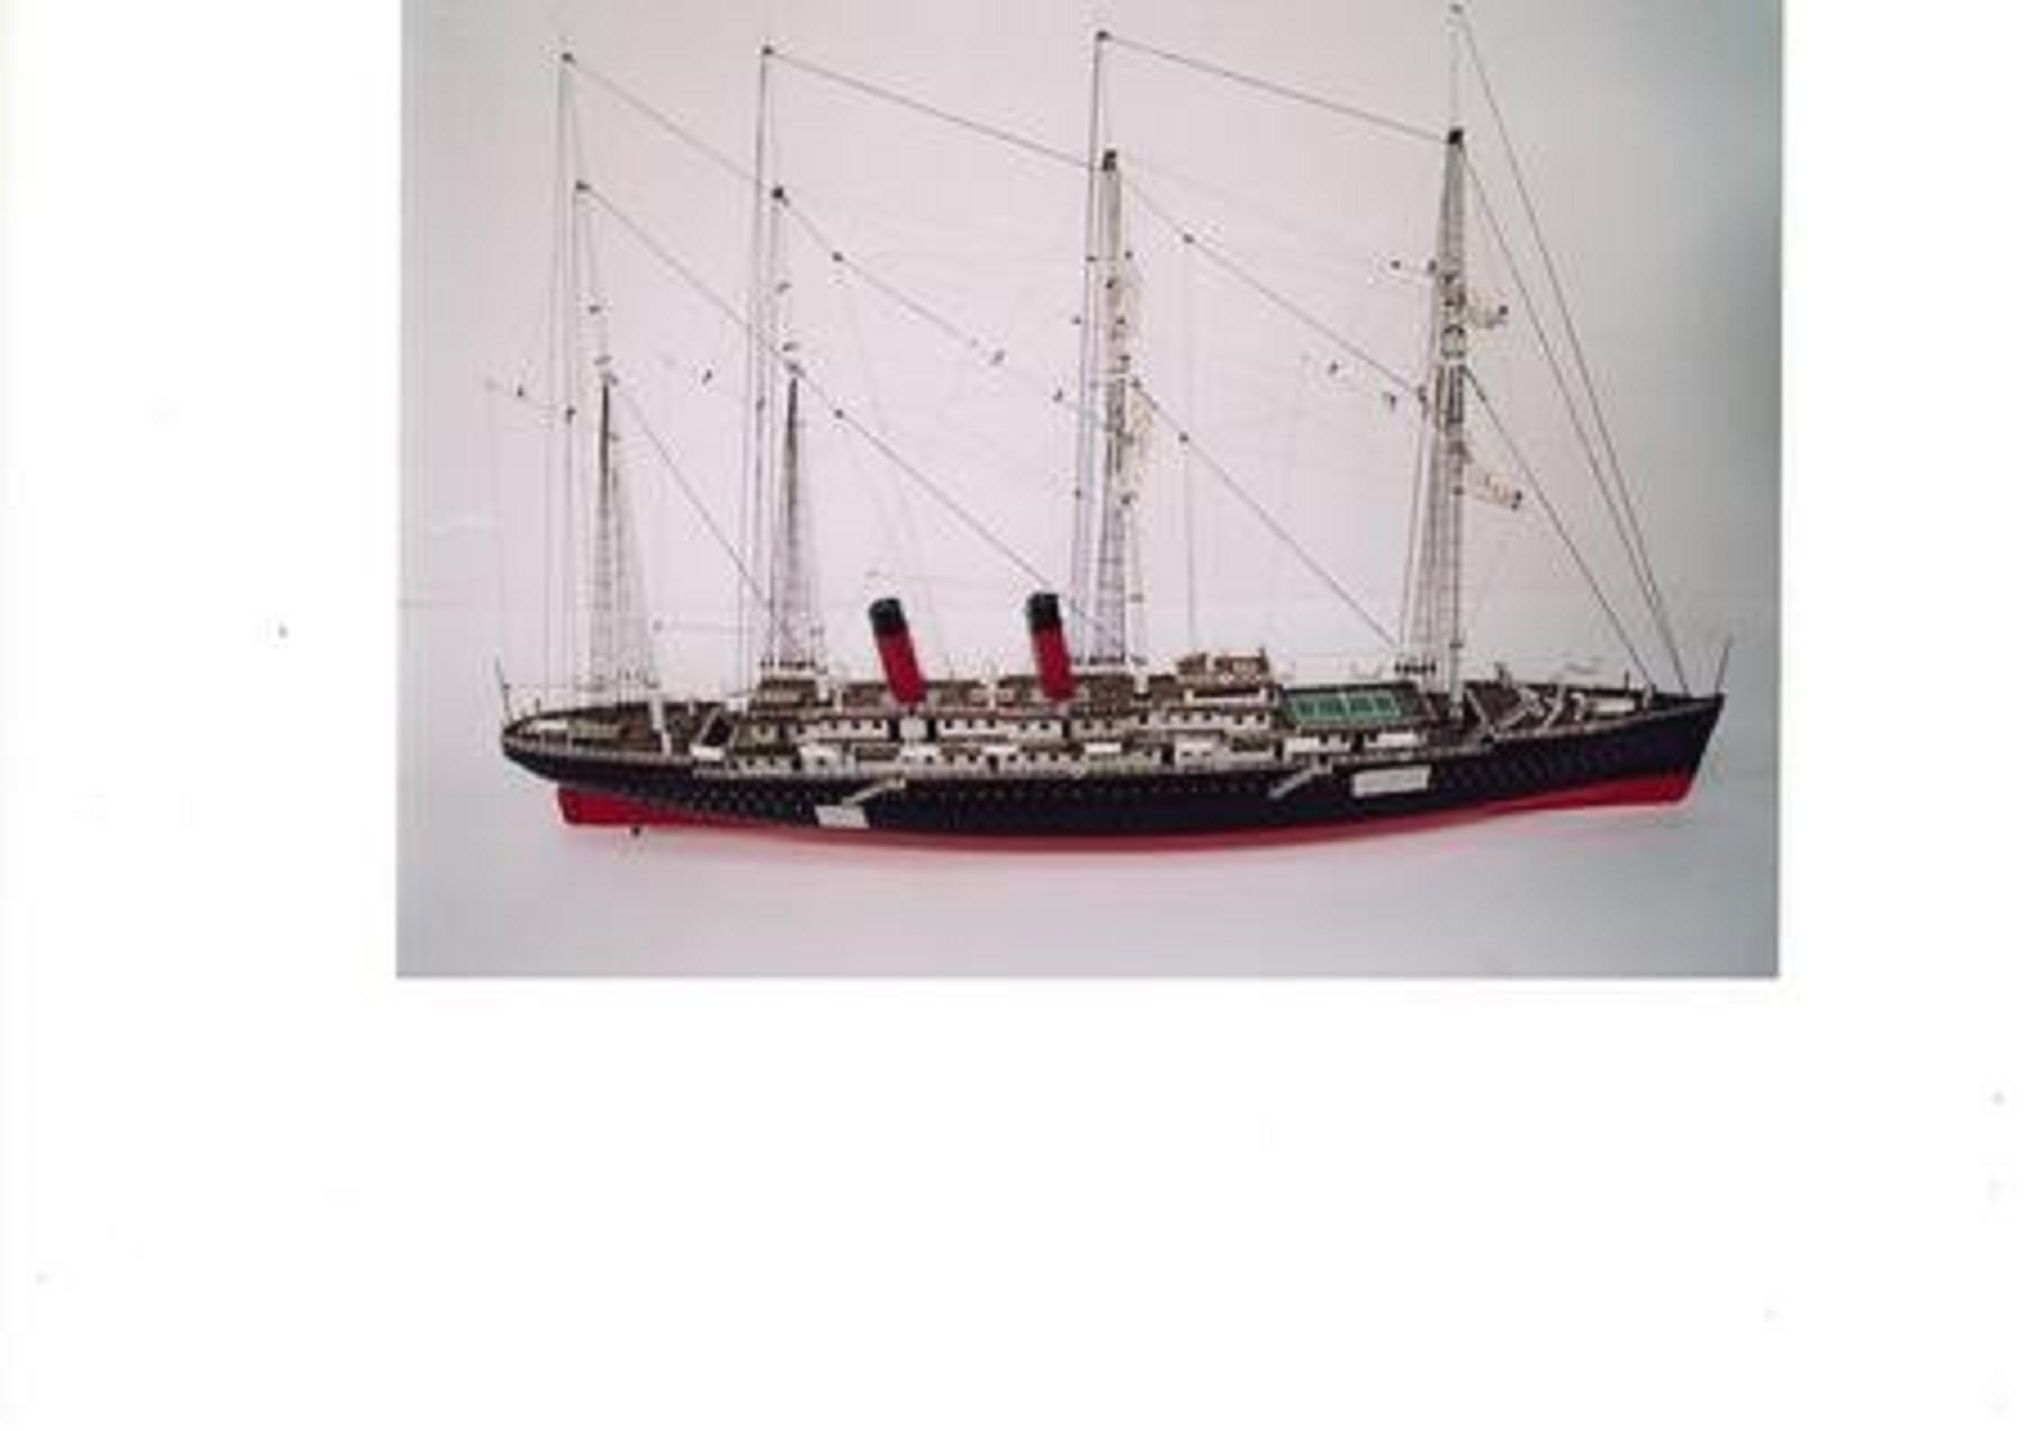 220-7500-La-Normandie-model-ship-Premier-Range